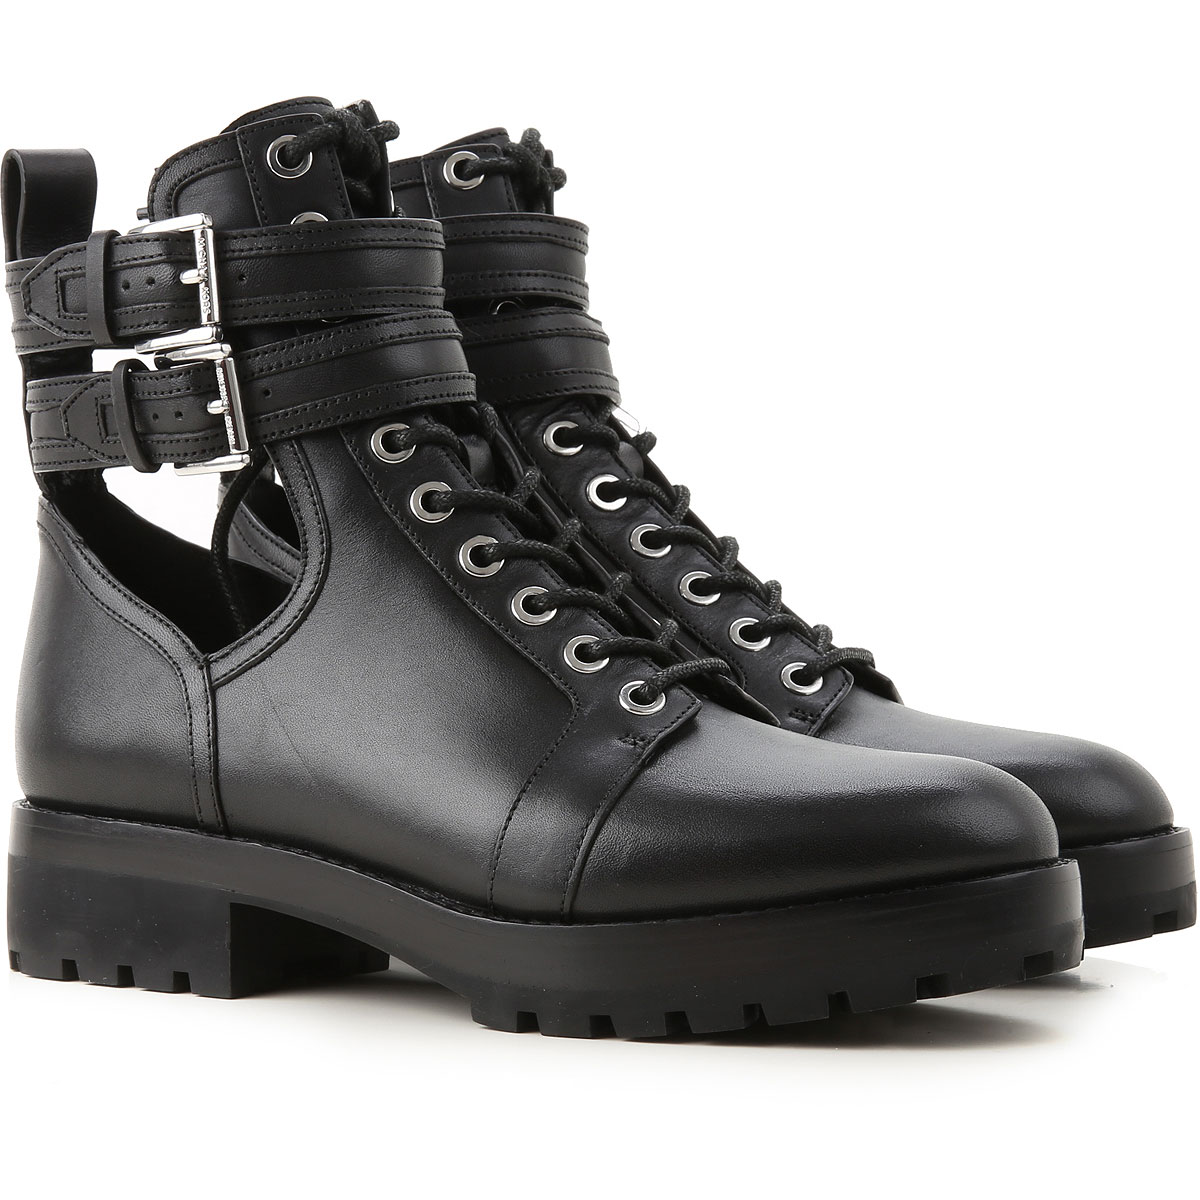 Michael Kors Boots for Women, Booties On Sale, Black, Leather, 2019, 10 6 8 8.5